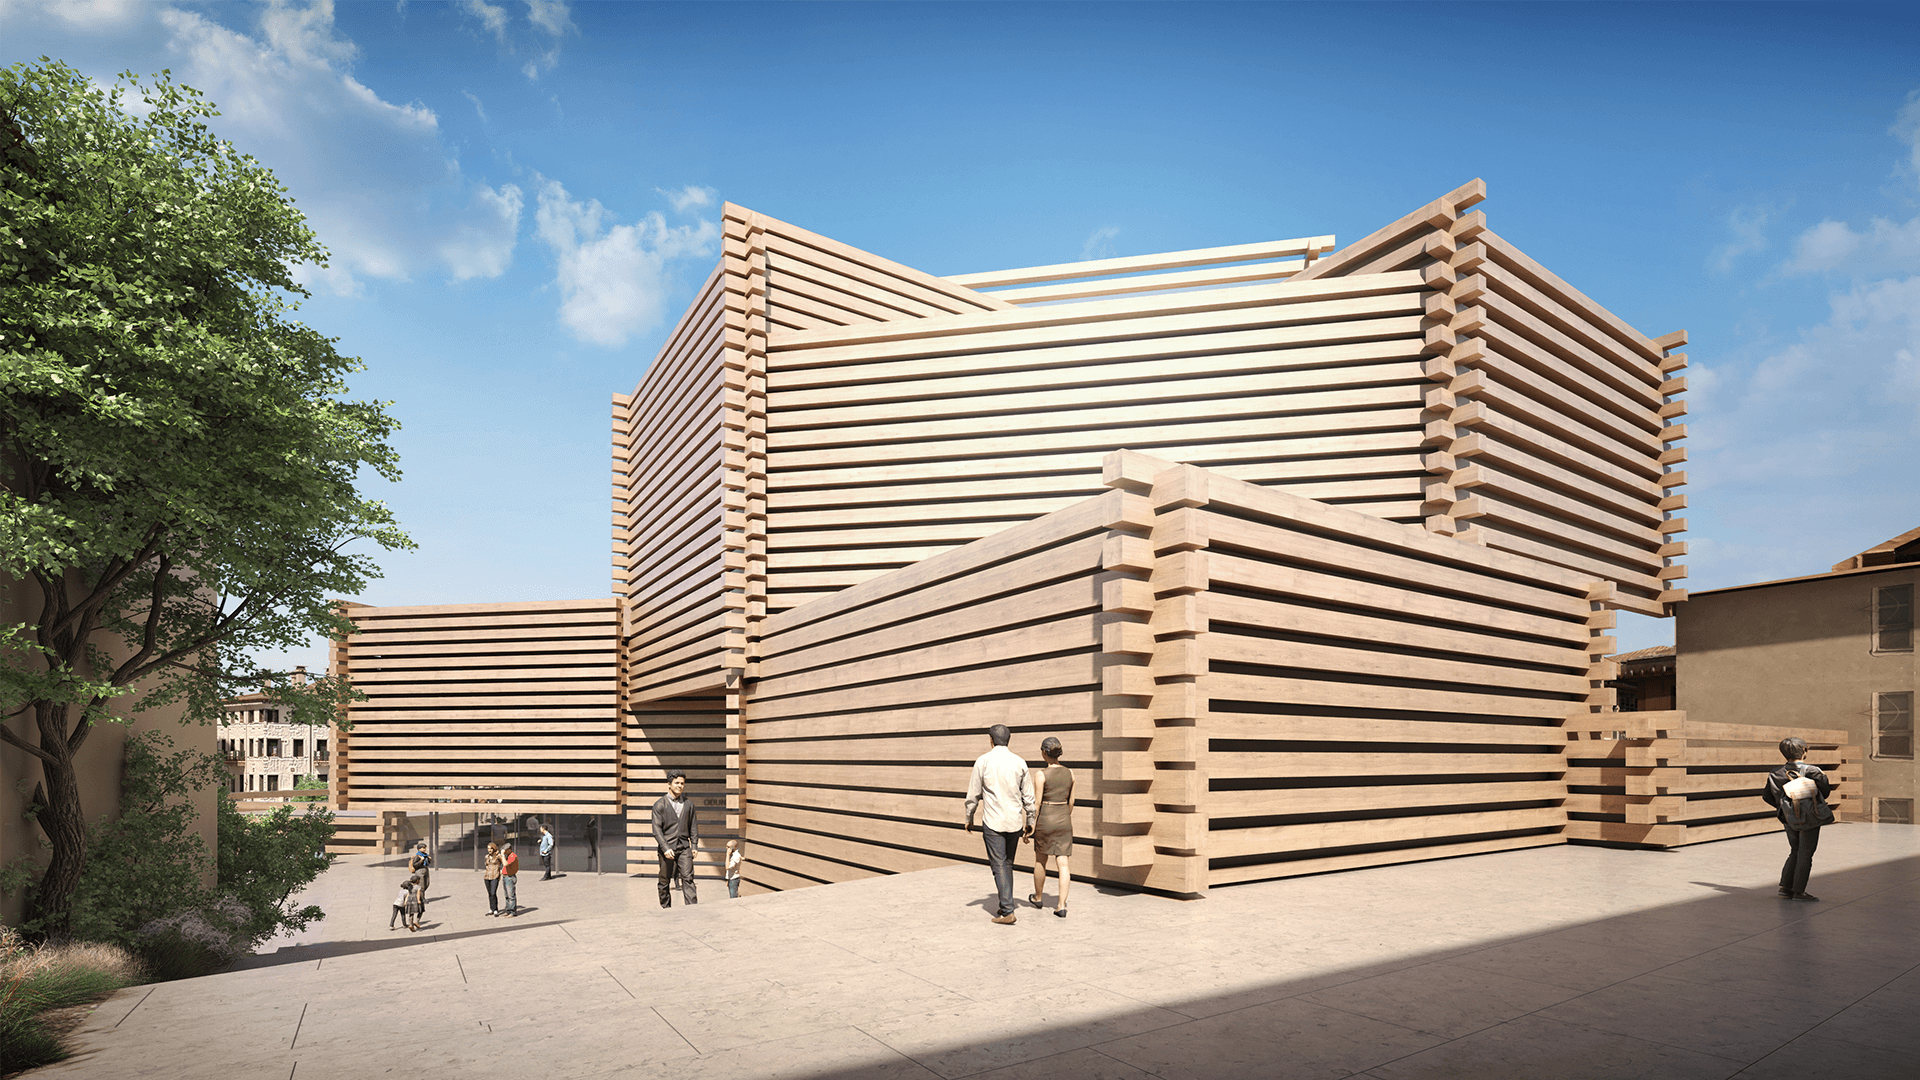 OMM, courtesy of Kengo Kuma and Associates(KKAA)_(1)